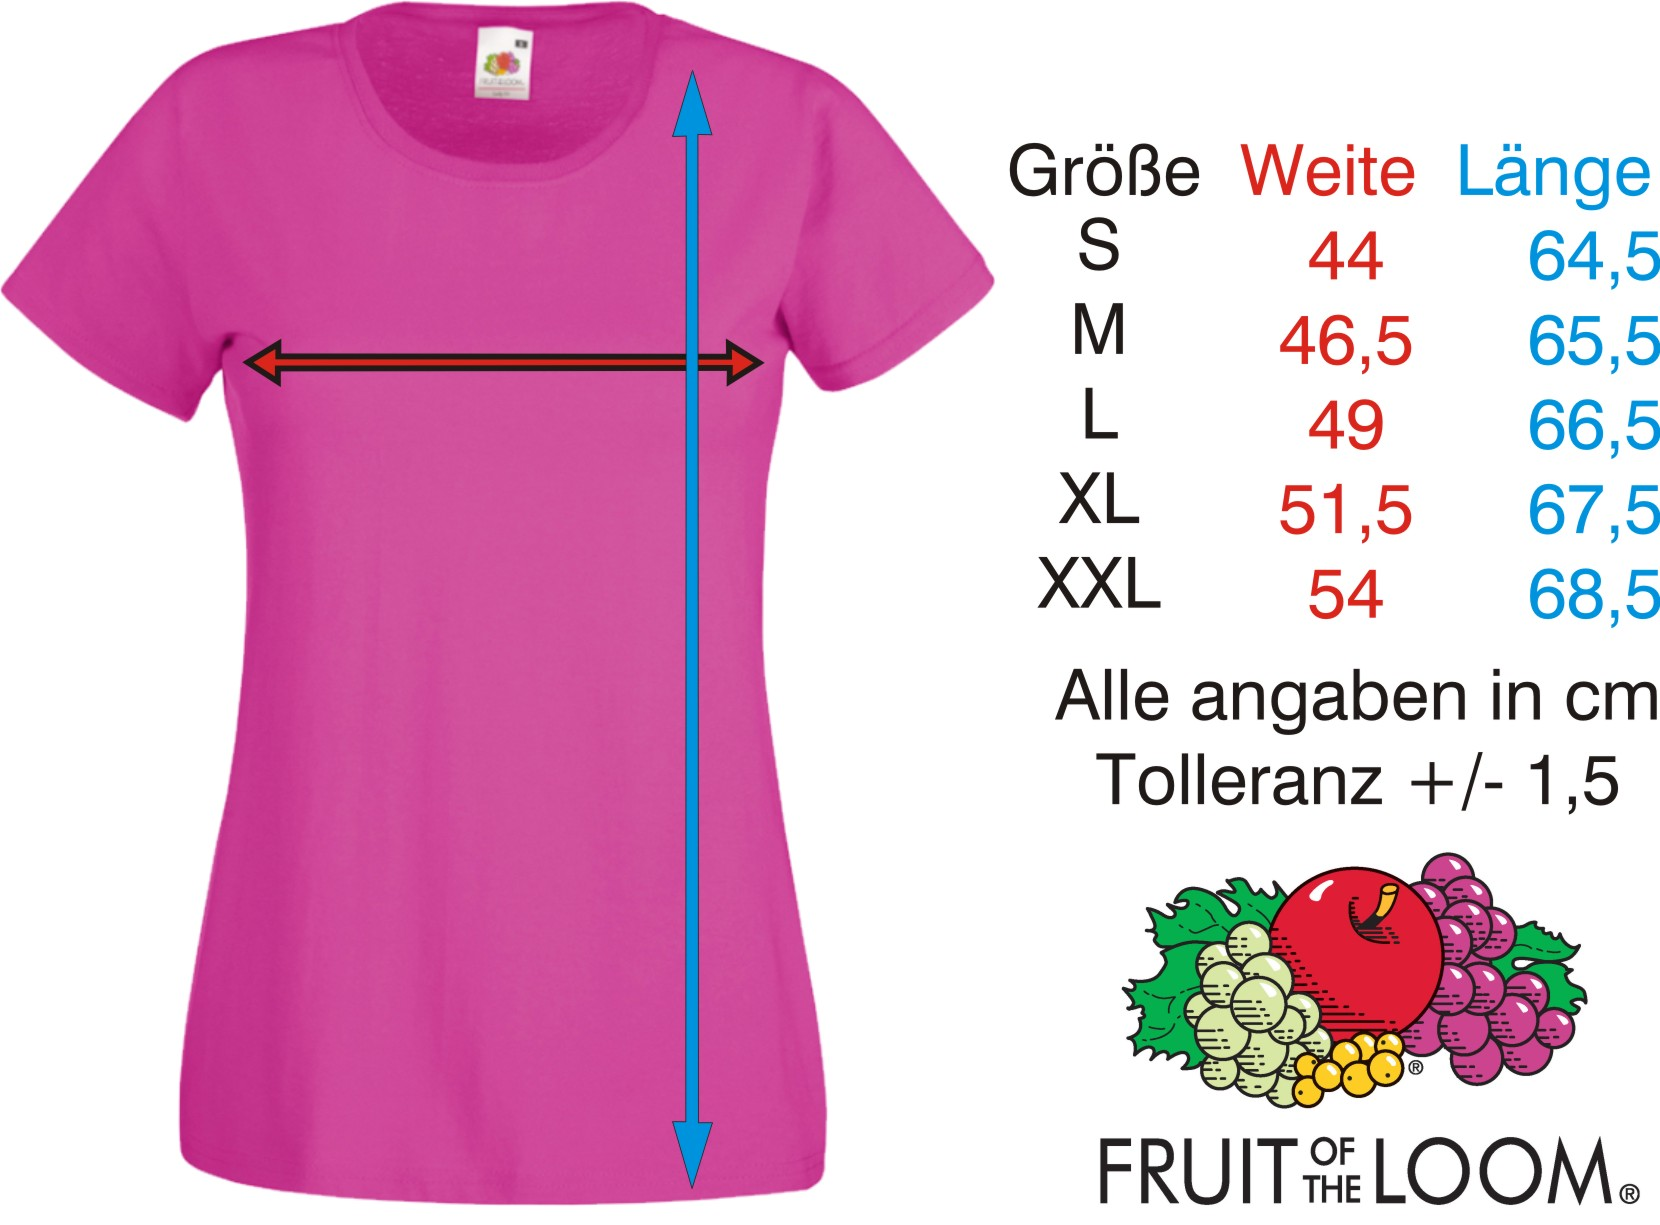 Damen T Shirt von Fruit of the Loom Innovative Sofspun Qualität mit extra  weichem Griff Fashion Fit, feminine Passform mit Seitennähten 86259eb53e